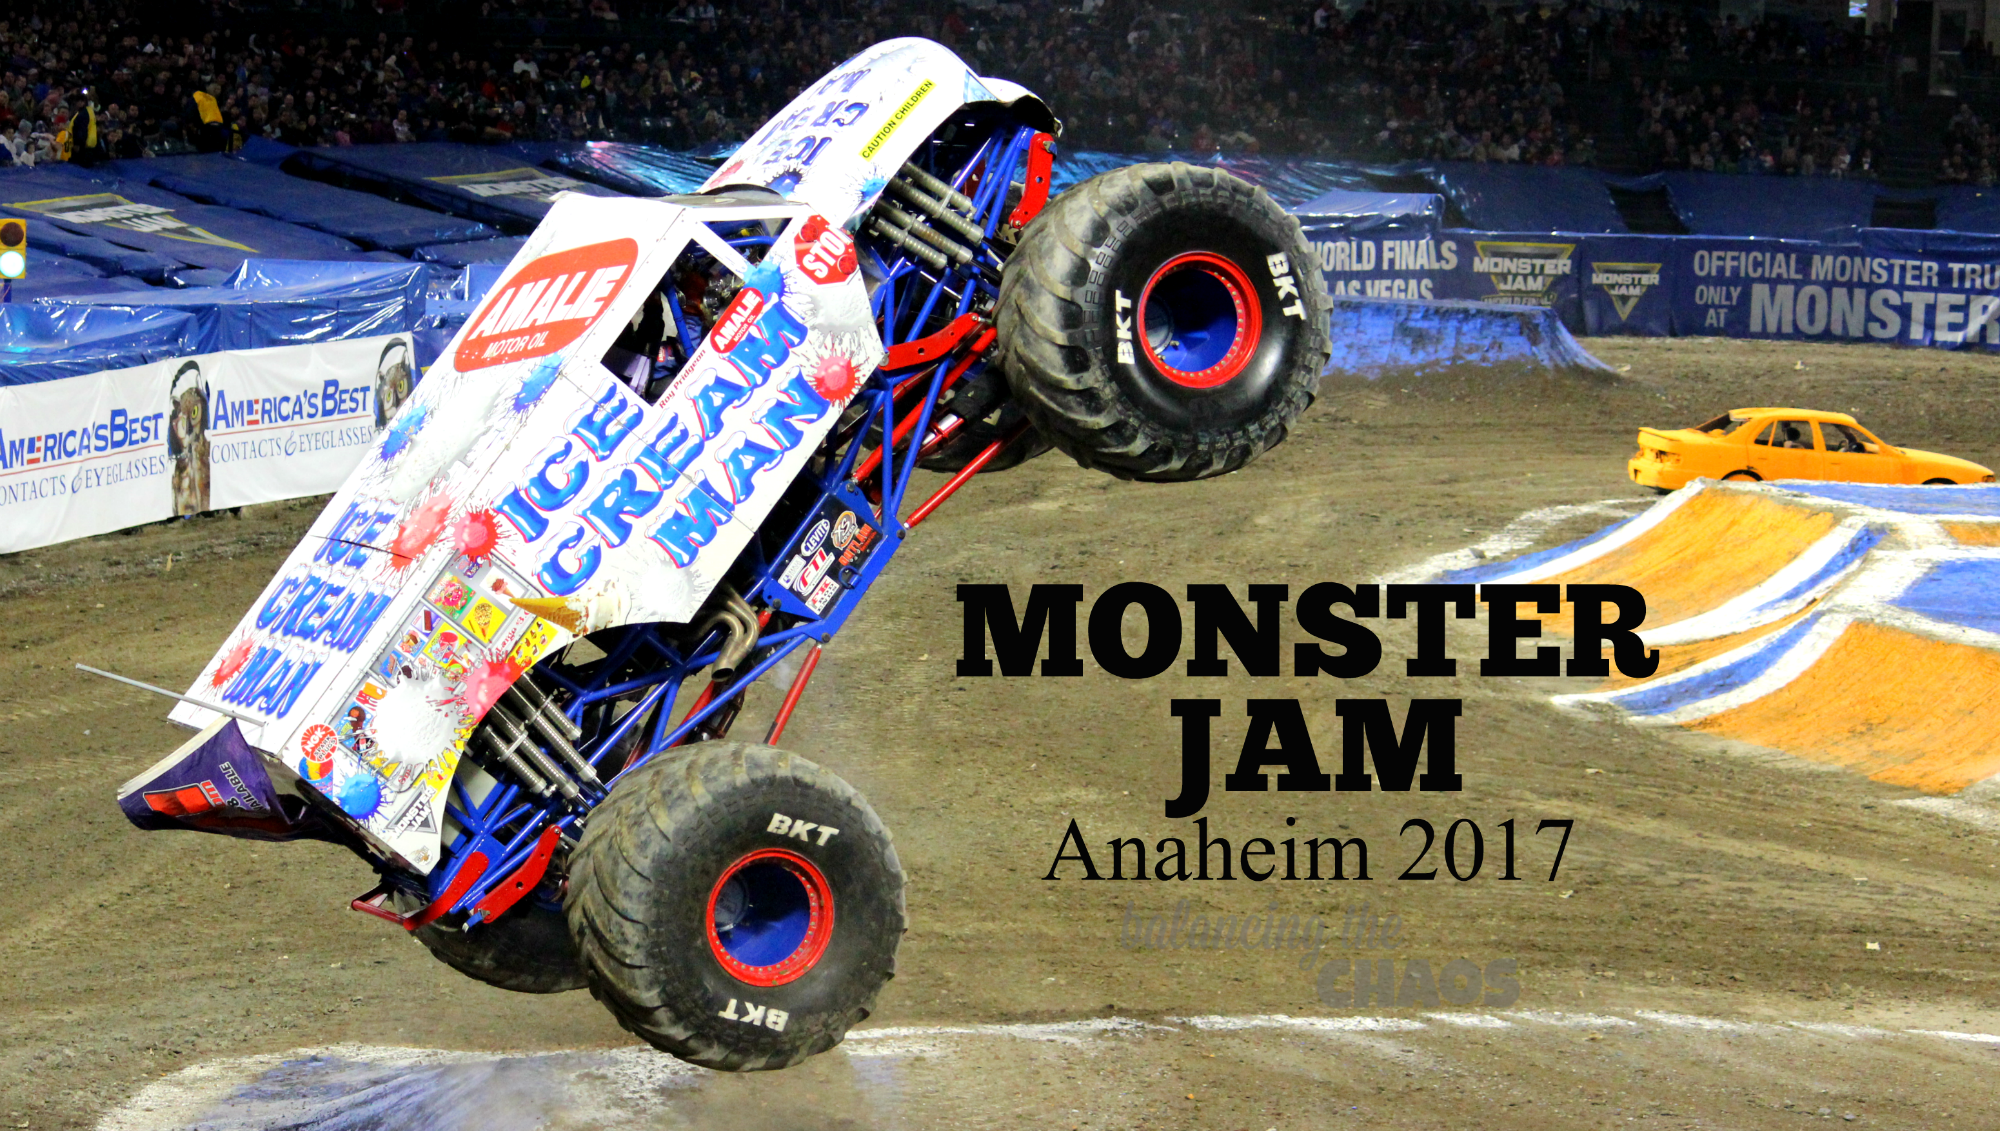 Monster Jam Anaheim 2017 Ice Cream Man Pit Party